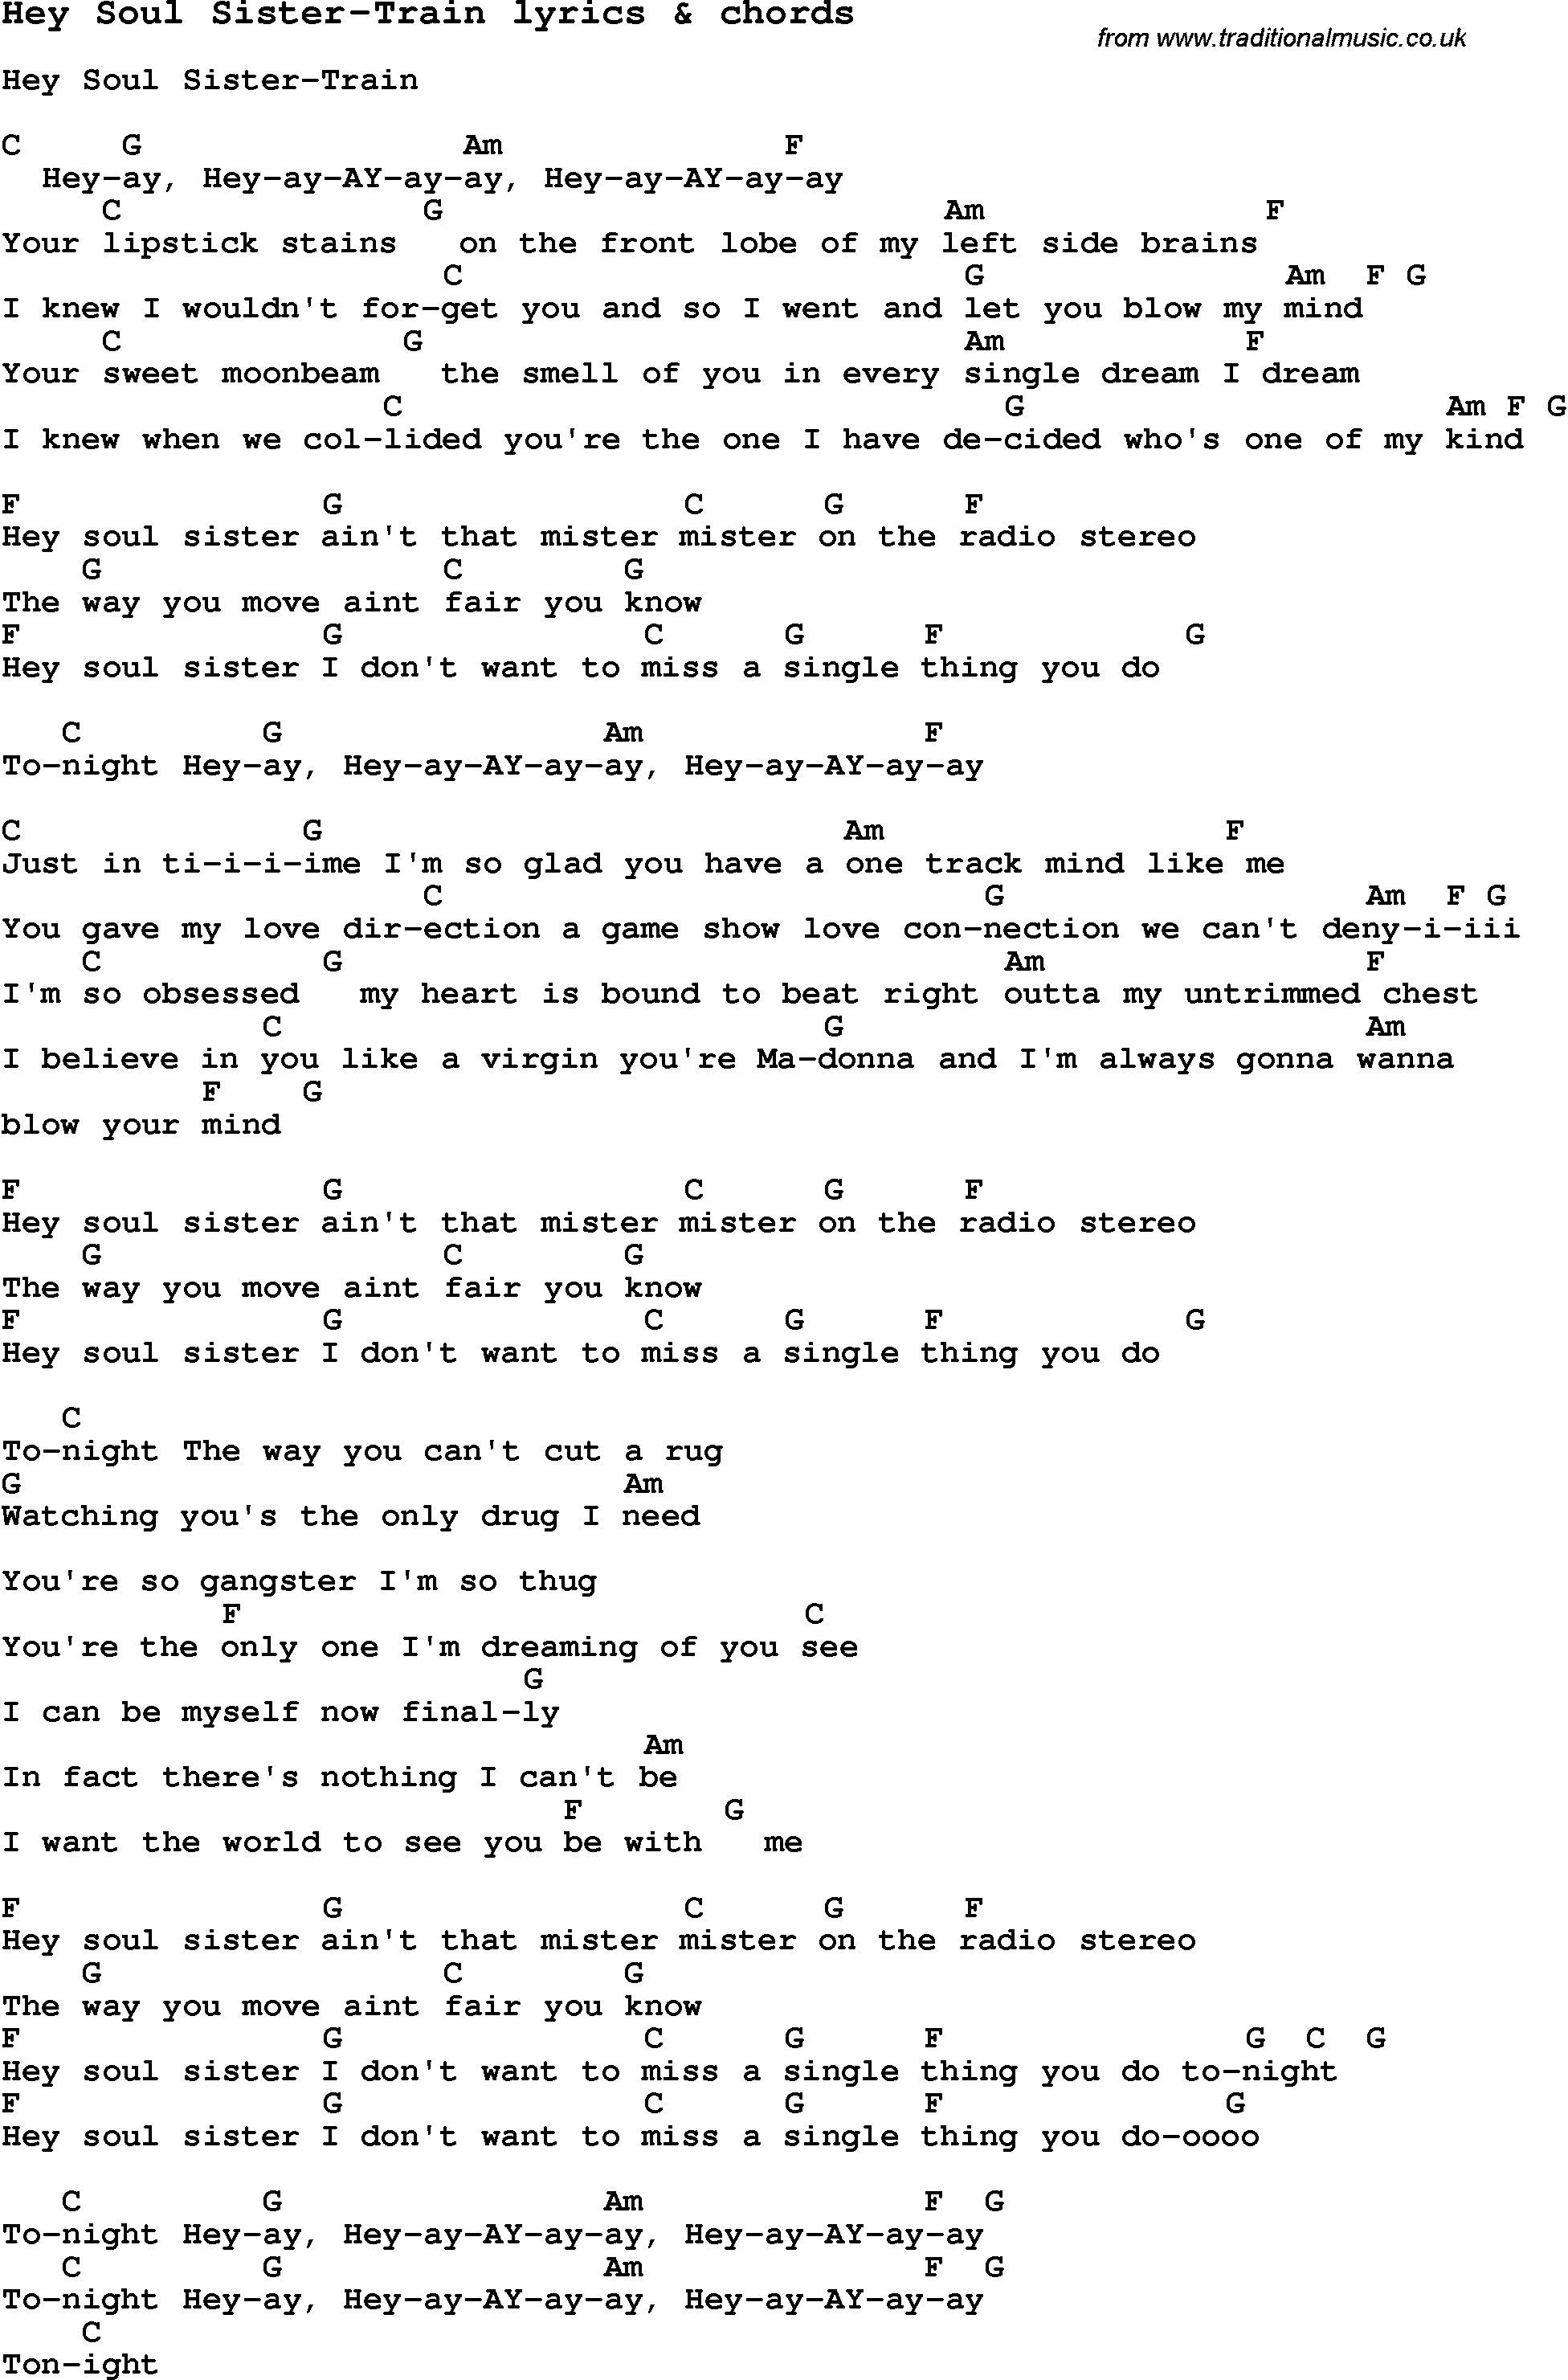 Love song lyrics forhey soul sister train with chords love song lyrics for hey soul sister train with chords for ukulele guitar hexwebz Images